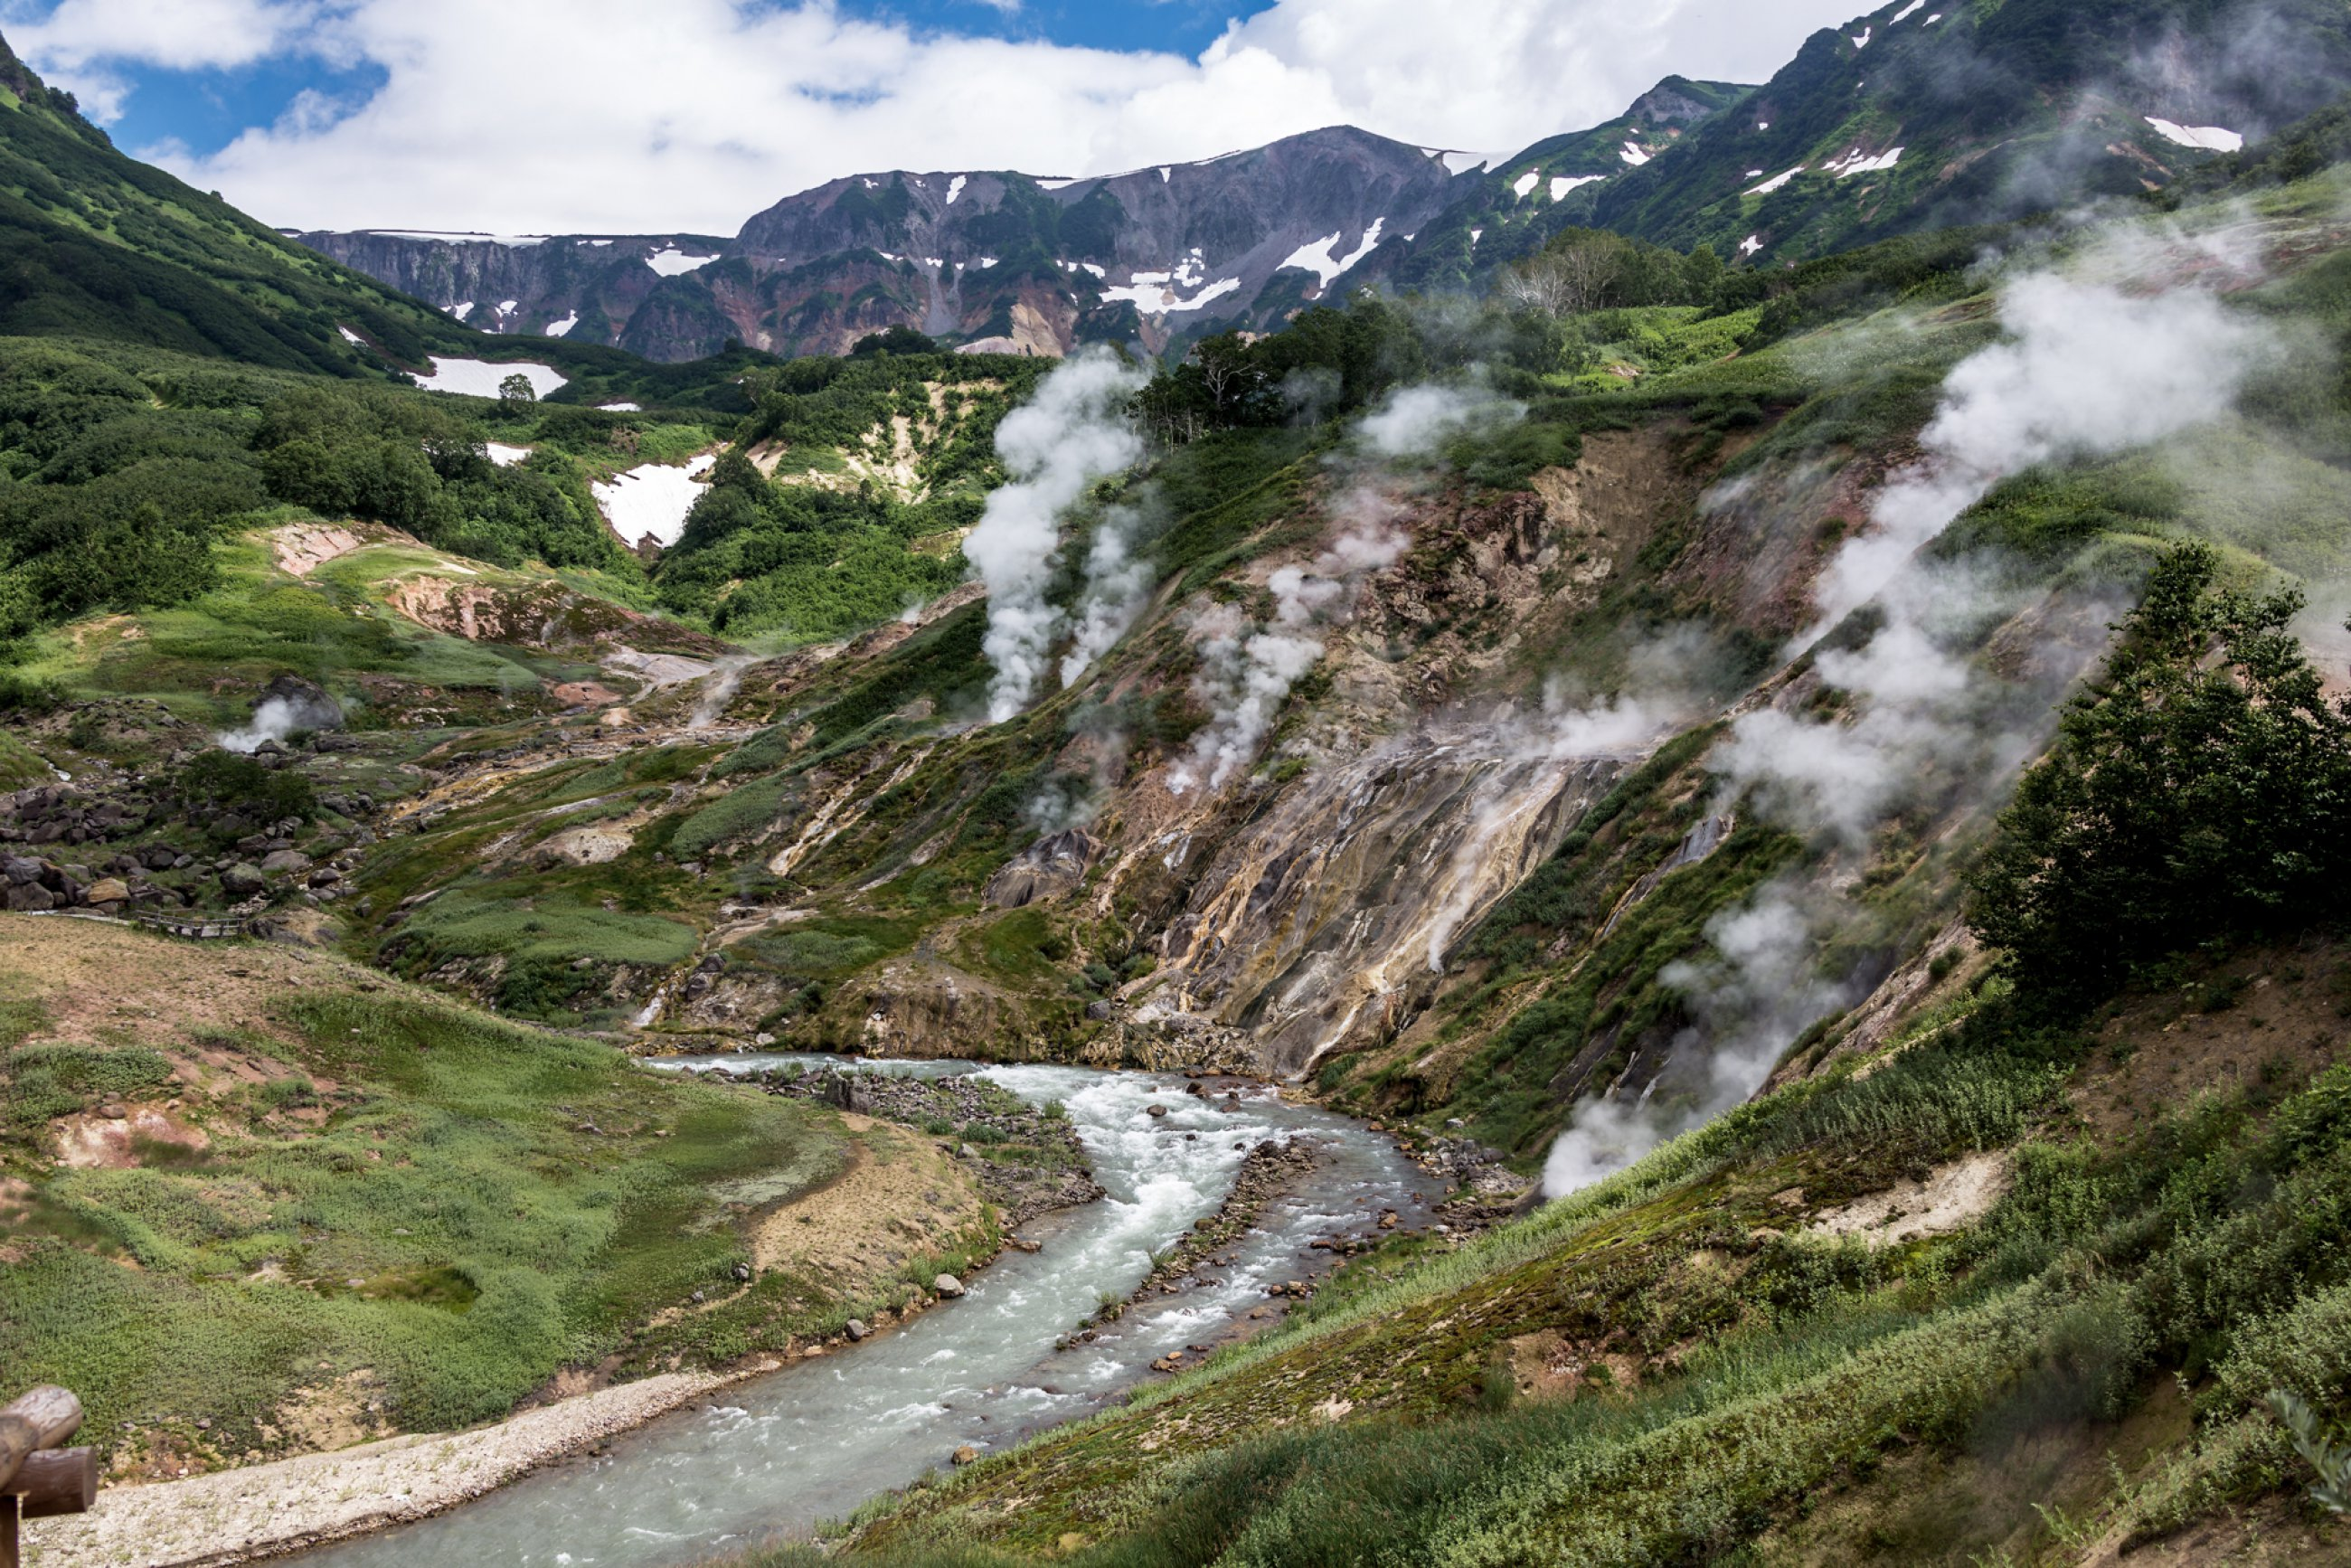 https://bubo.sk/uploads/galleries/4927/kamcatka-valley-of-geysers-kamchatka.jpg